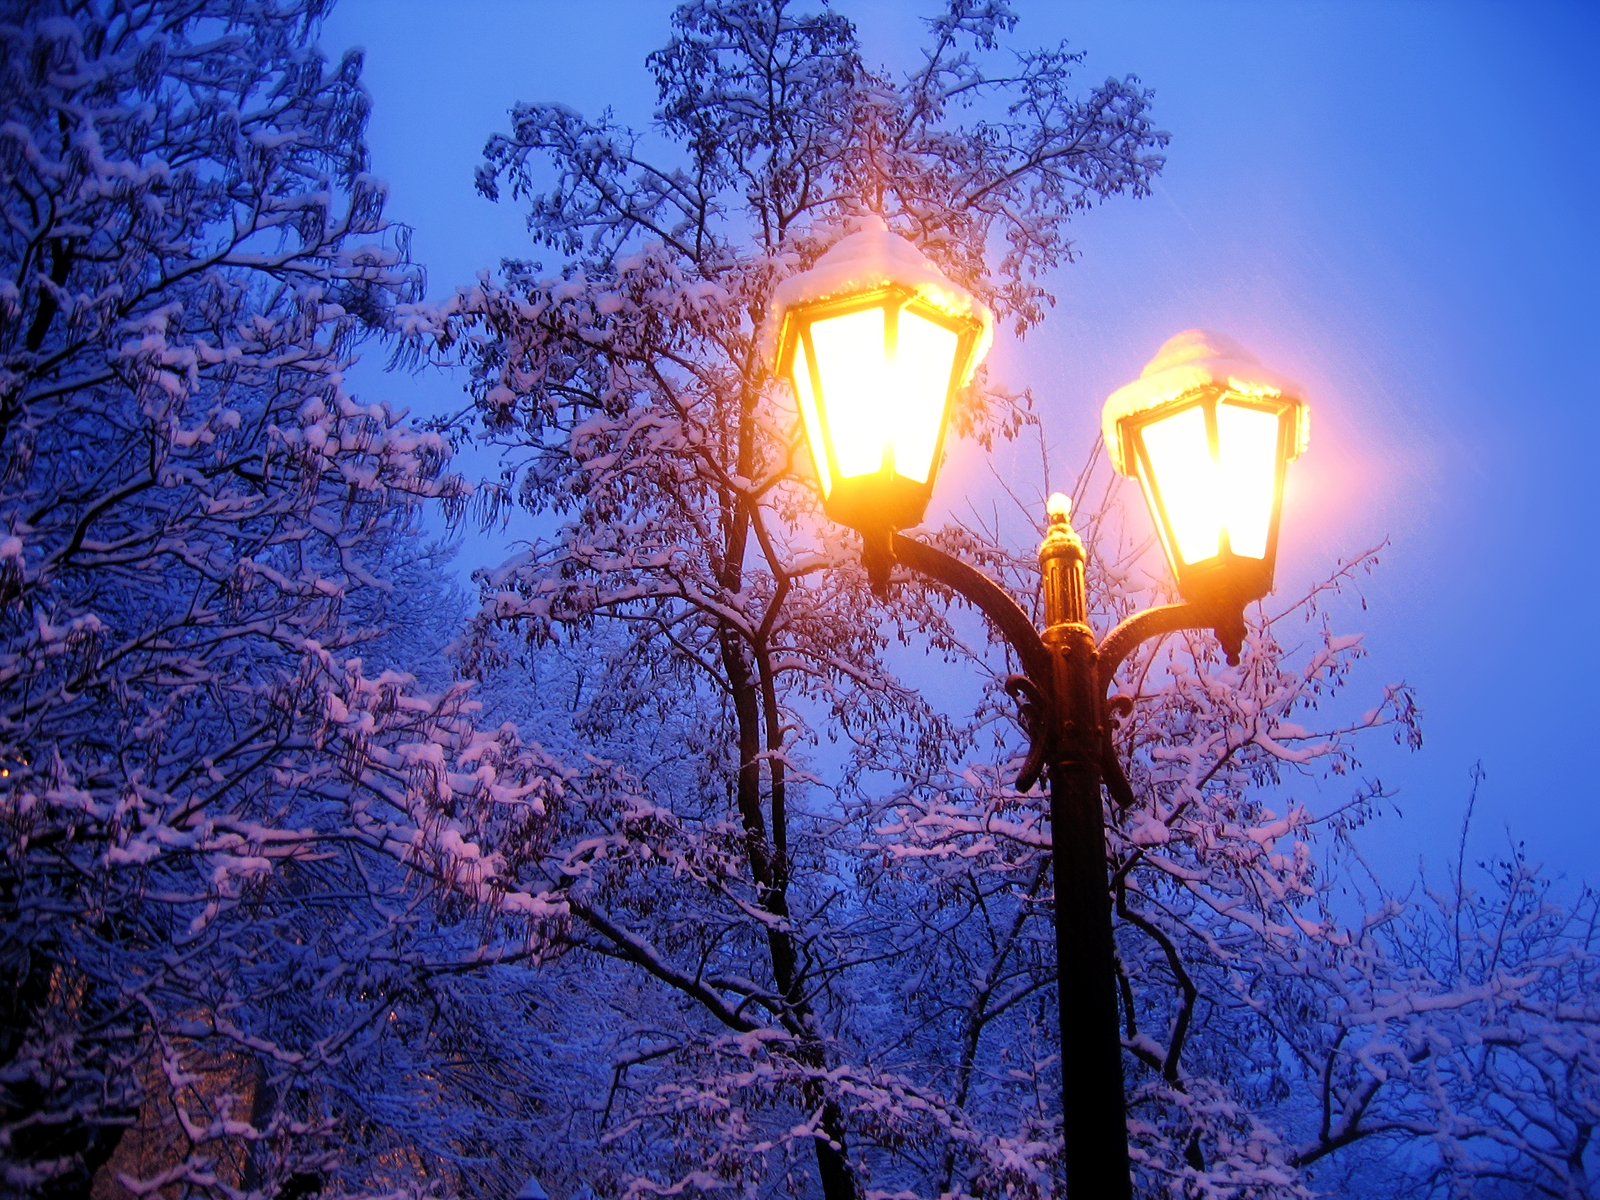 Animierte Weihnachtsbilder.City Lights Winter Snow Wallpaper Rules Are Not Necessarily Sacred